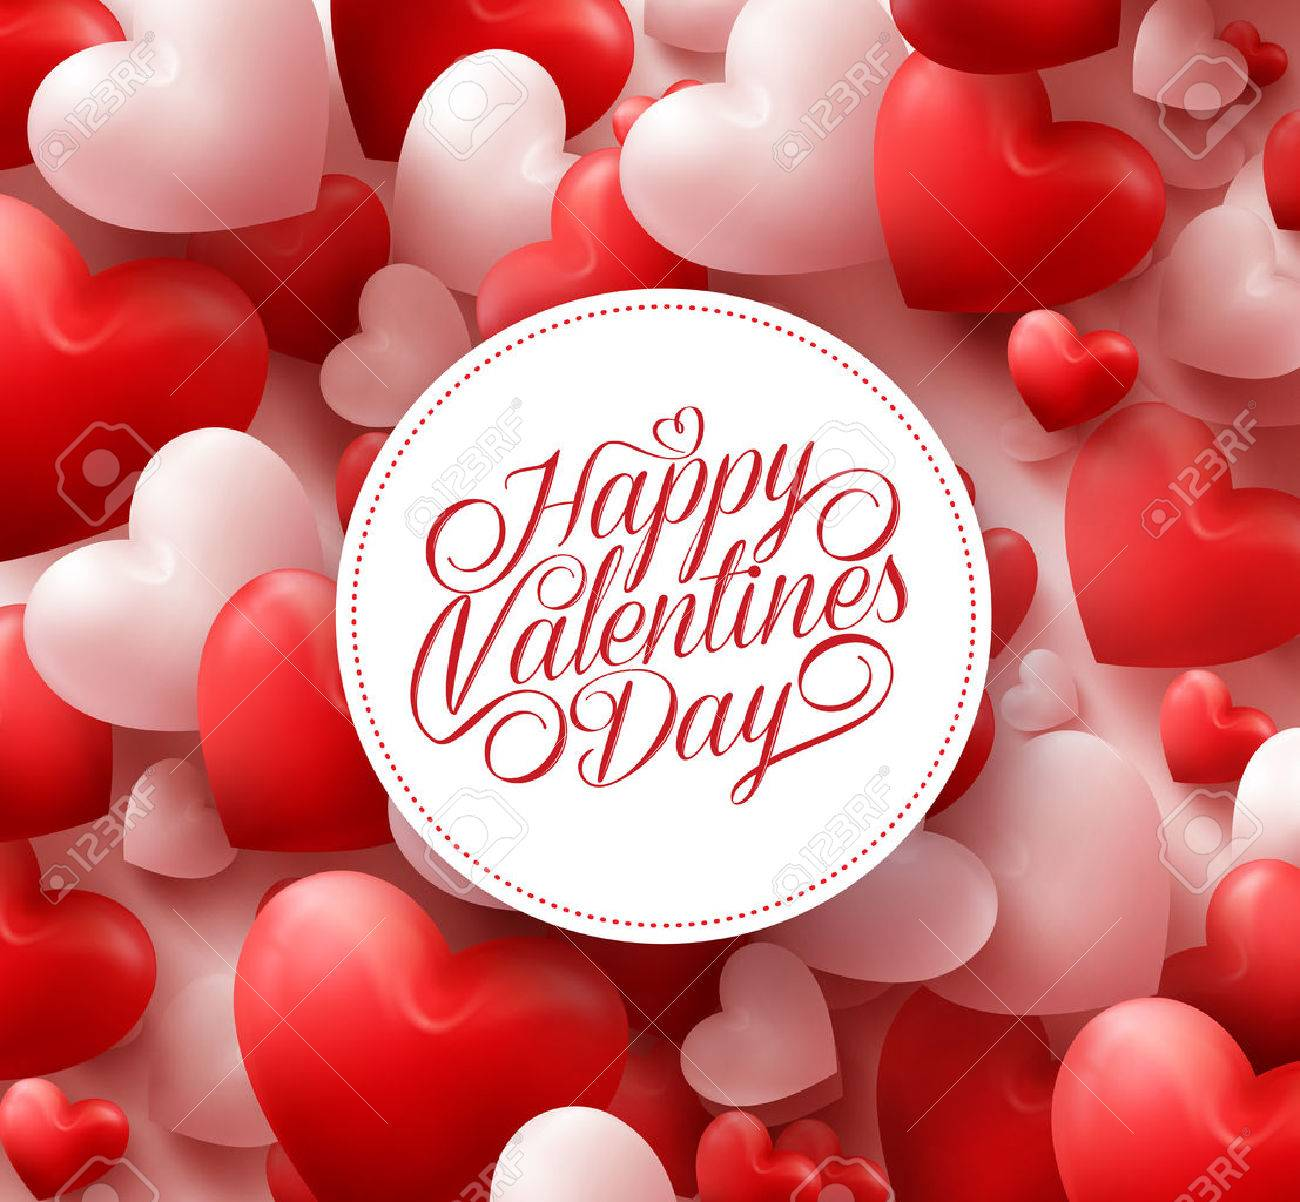 3D Realistic Red Hearts Background with Happy Valentines Day Greetings in White Circle. Illustration - 50500005